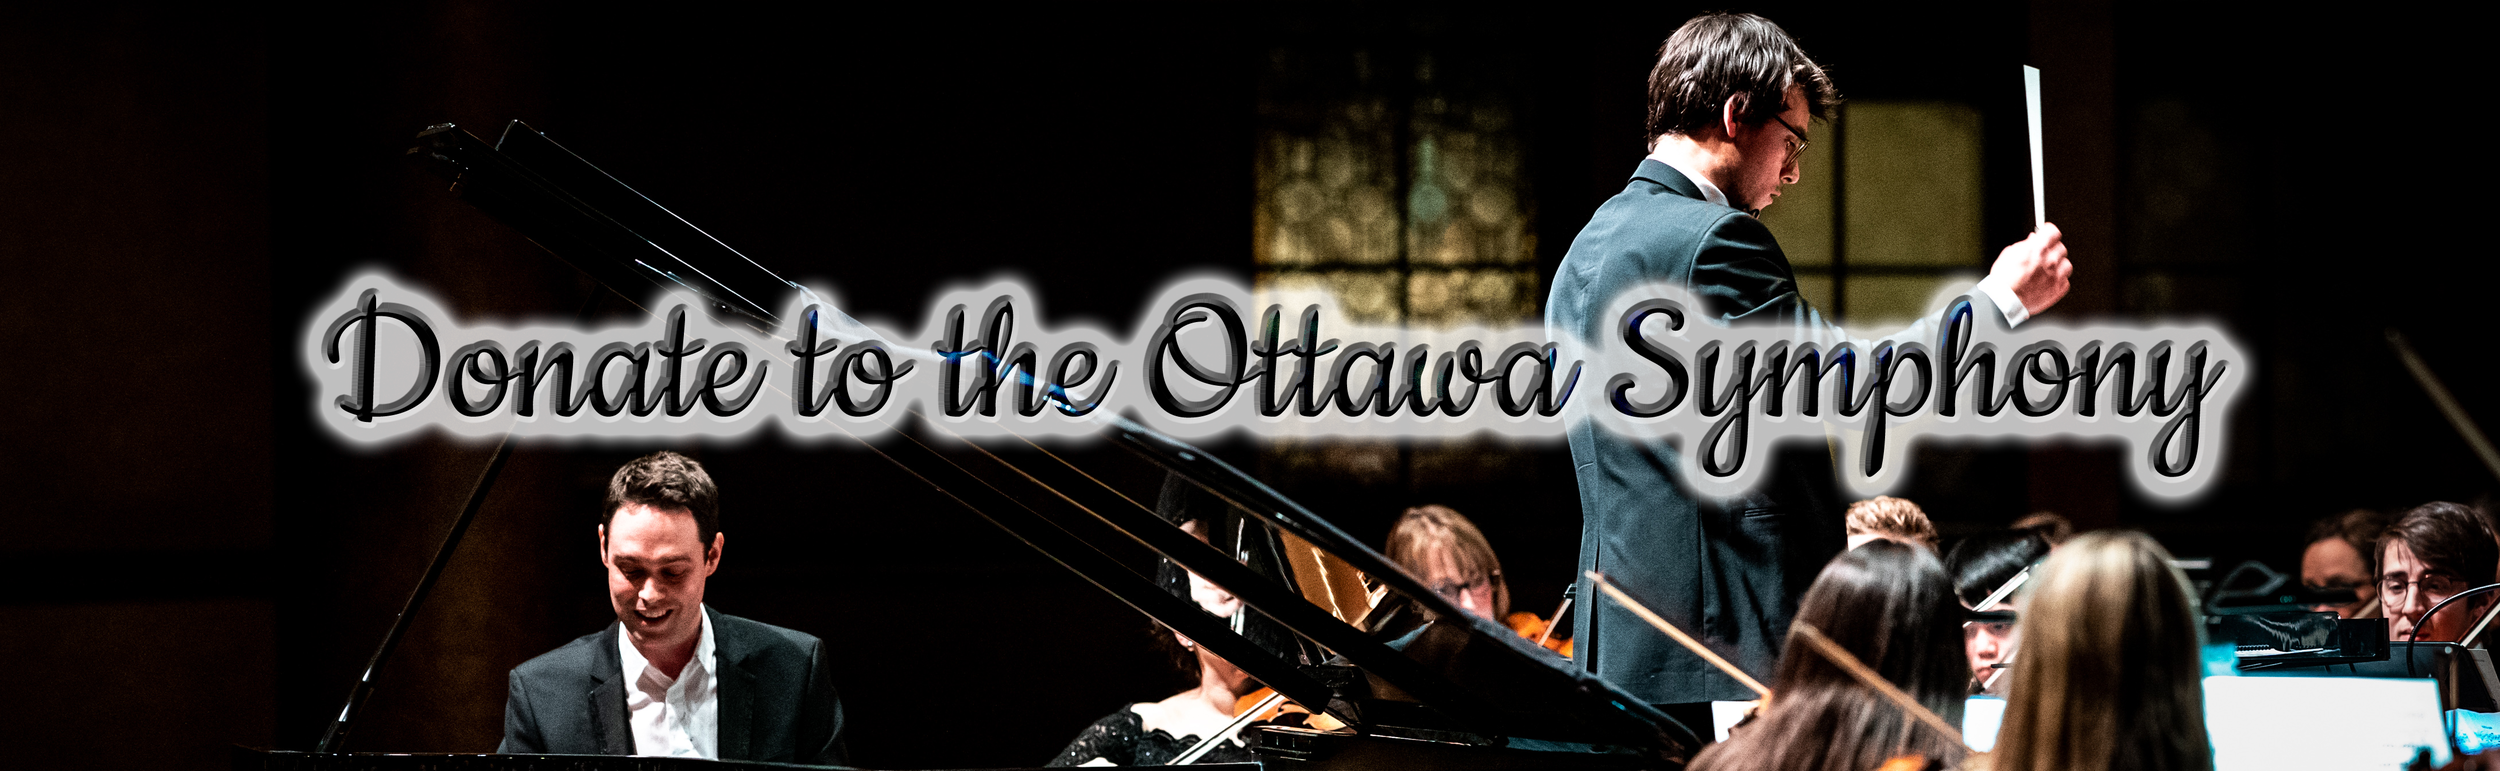 """Your donation to the Ottawa Symphony Orchestra  ensures we can continue staging the large-scale orchestral works you love. Every donation also supports our professional, local, musicians, as well as emerging musicians in our Mentorship Programs, many of whom experience professional """"firsts"""" through playing with the Orchestra."""